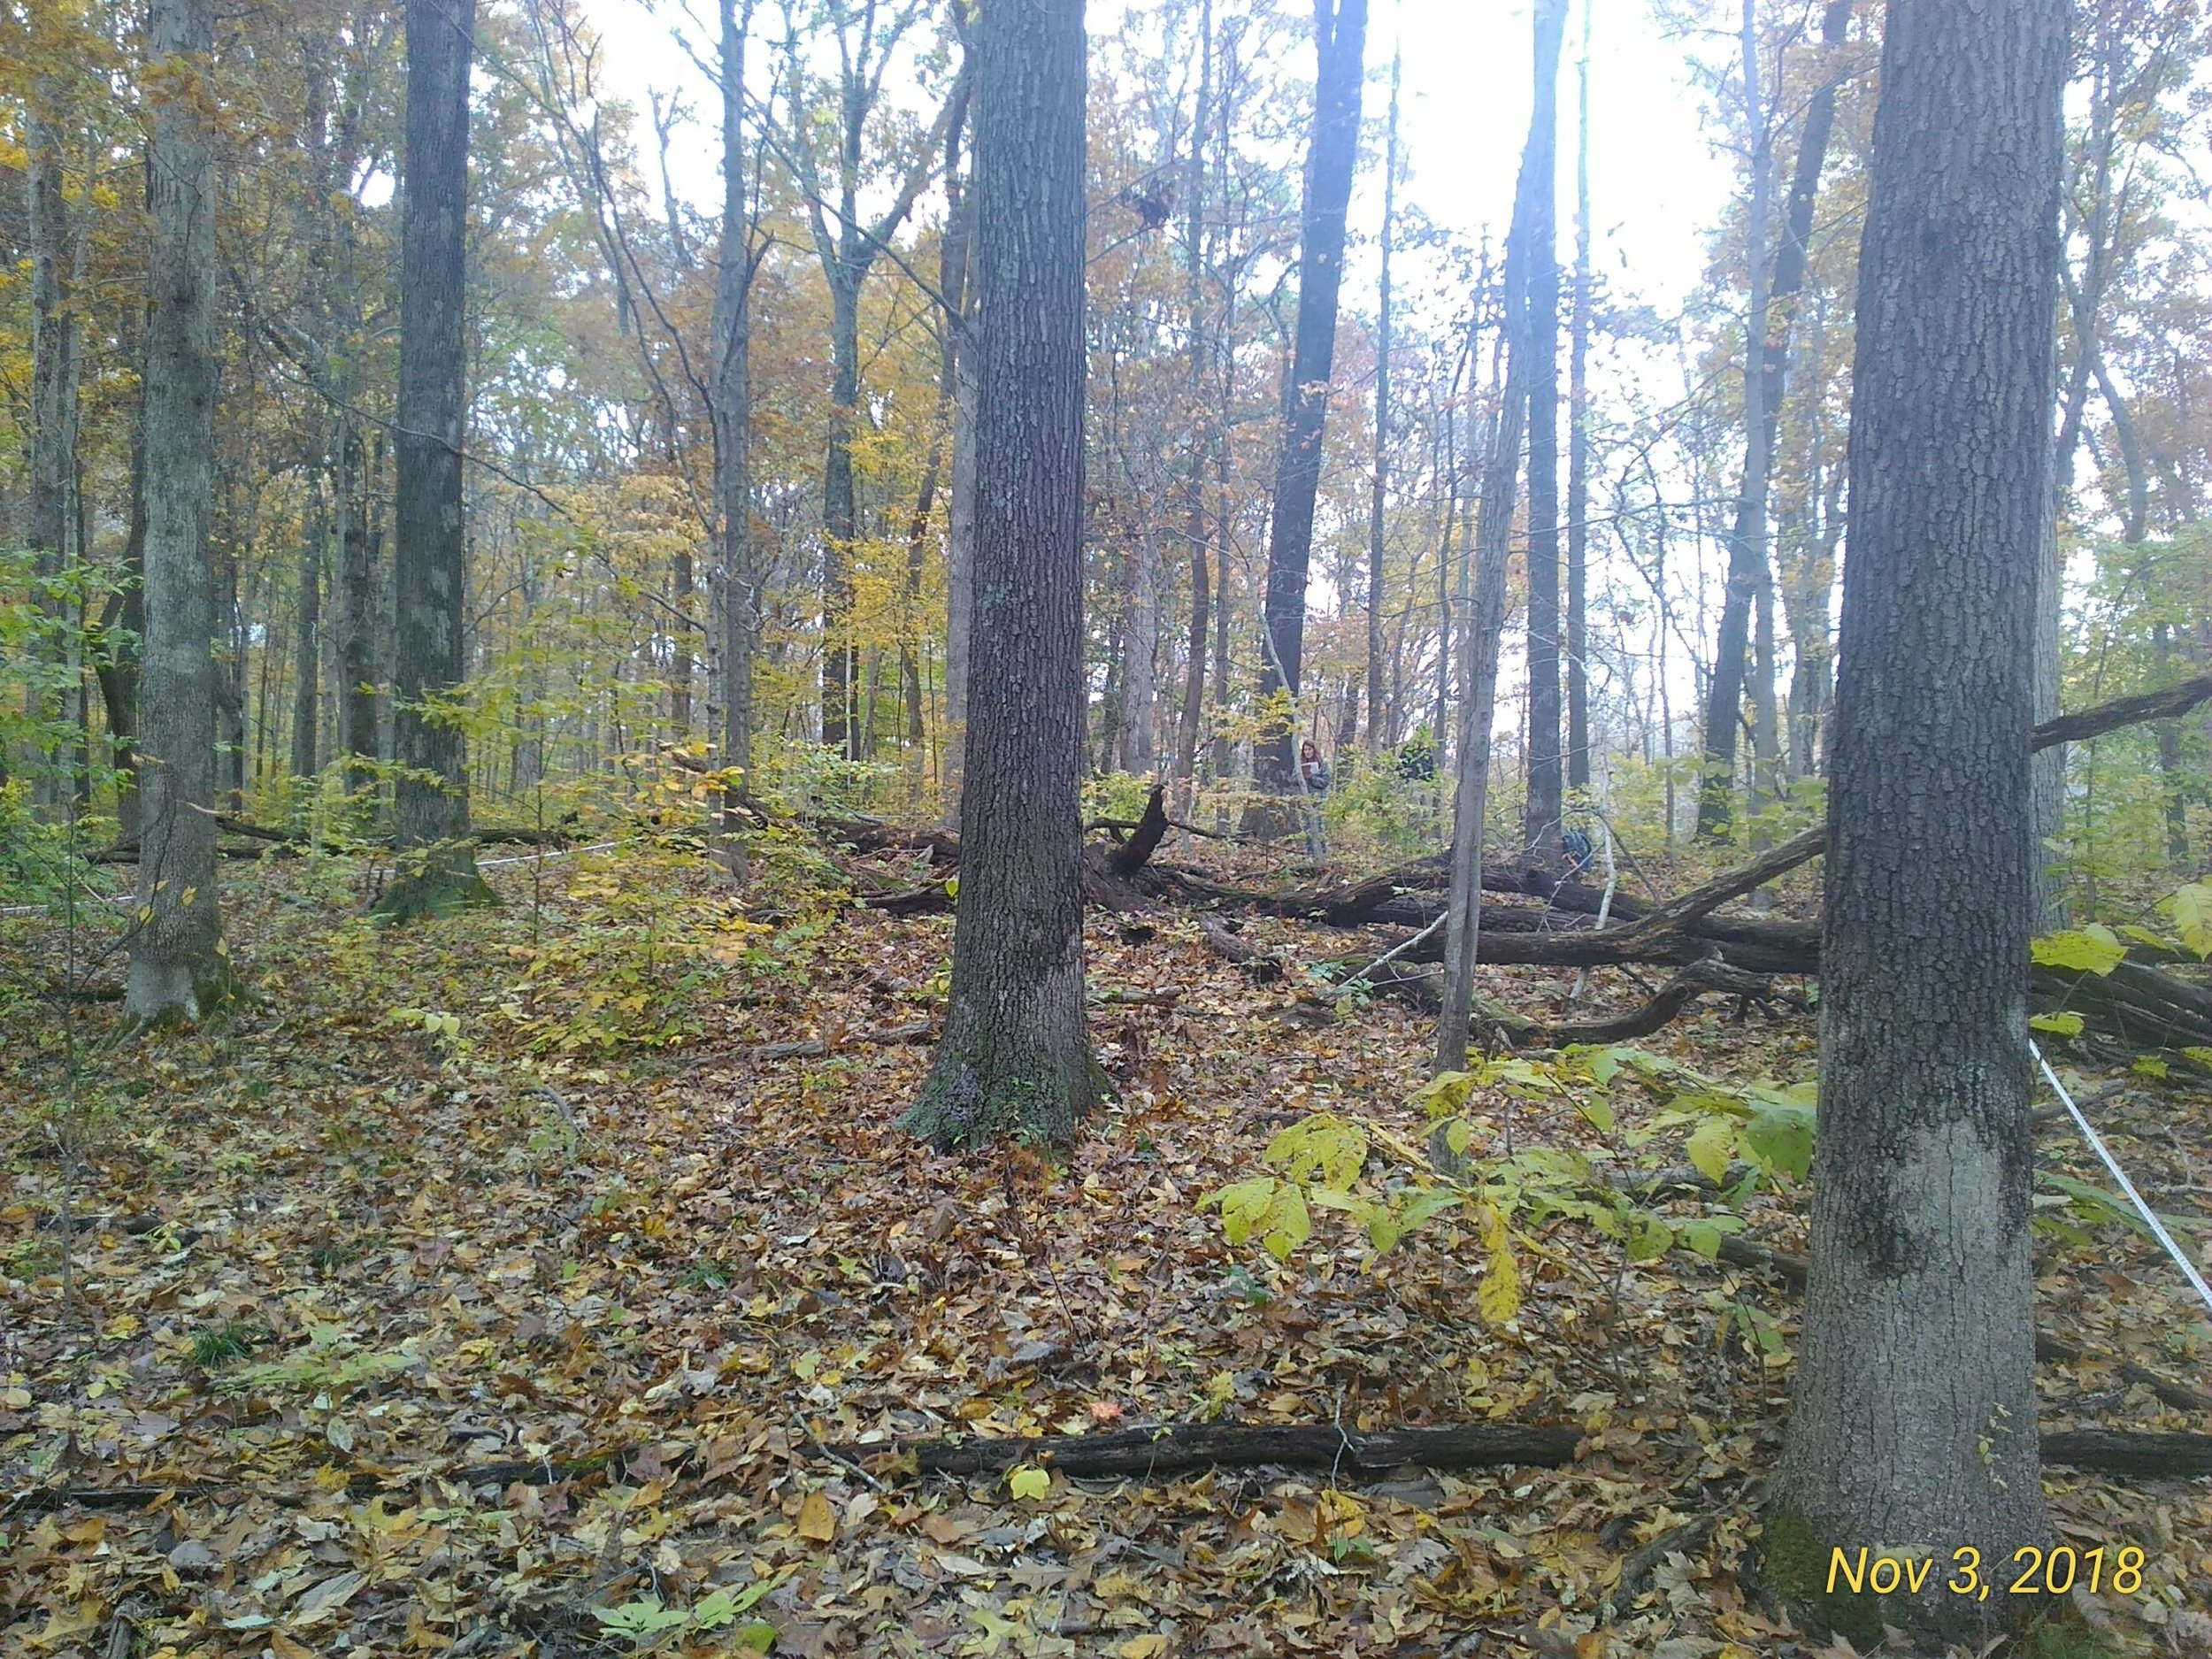 Timber stand improvement area that claims the need to allow more light to reach the forest floor for oak hickory regeneration.